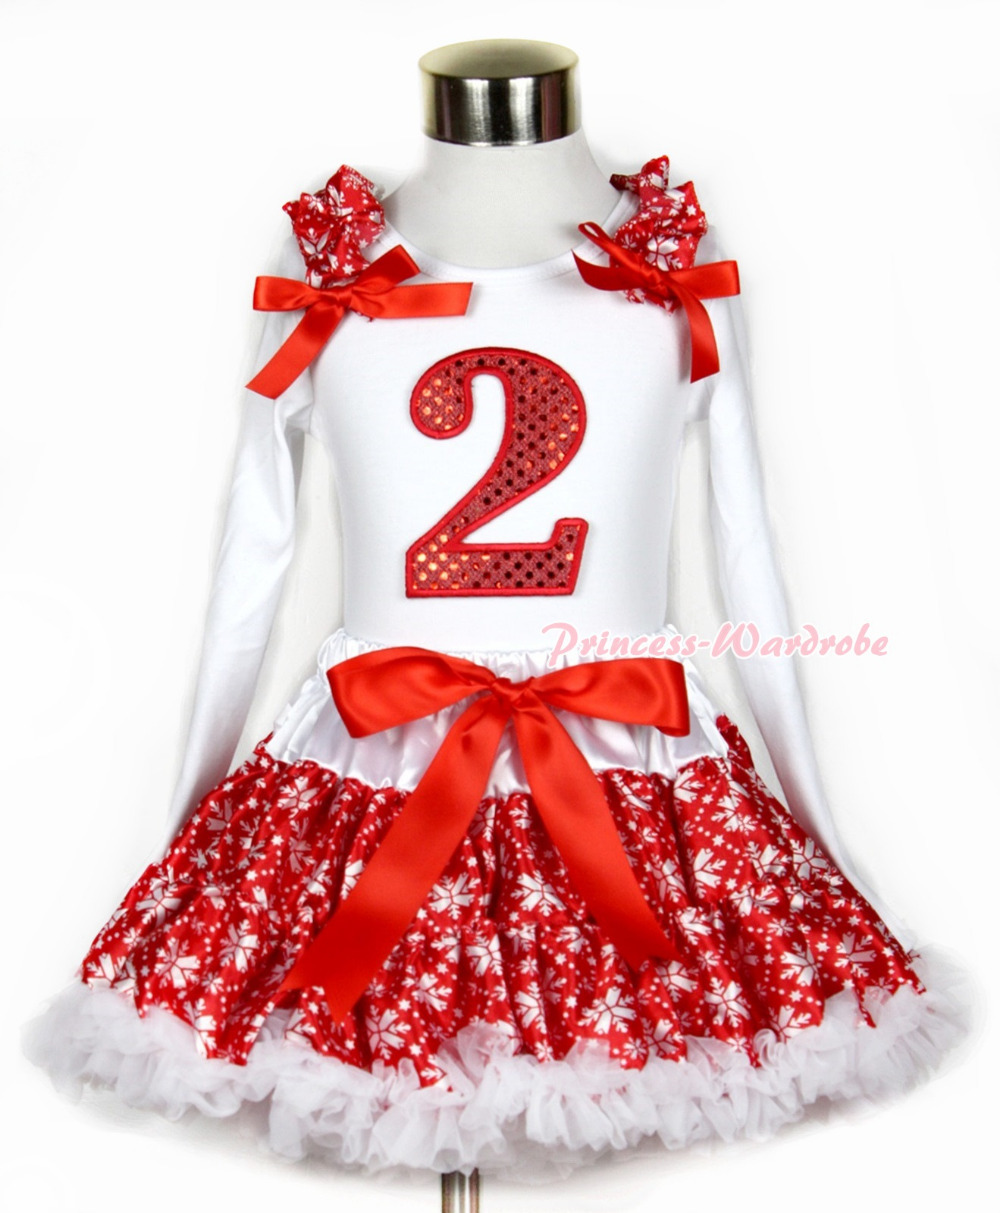 Xmas Red Snowflakes Pettiskirt 2nd Sparkle Red Birthday Print White Long Sleeve Top Red Snowflakes Ruffles and Red Bow MAMW265 red black 8 layered pettiskirt red sparkle number ruffle red bow tank top mamg575